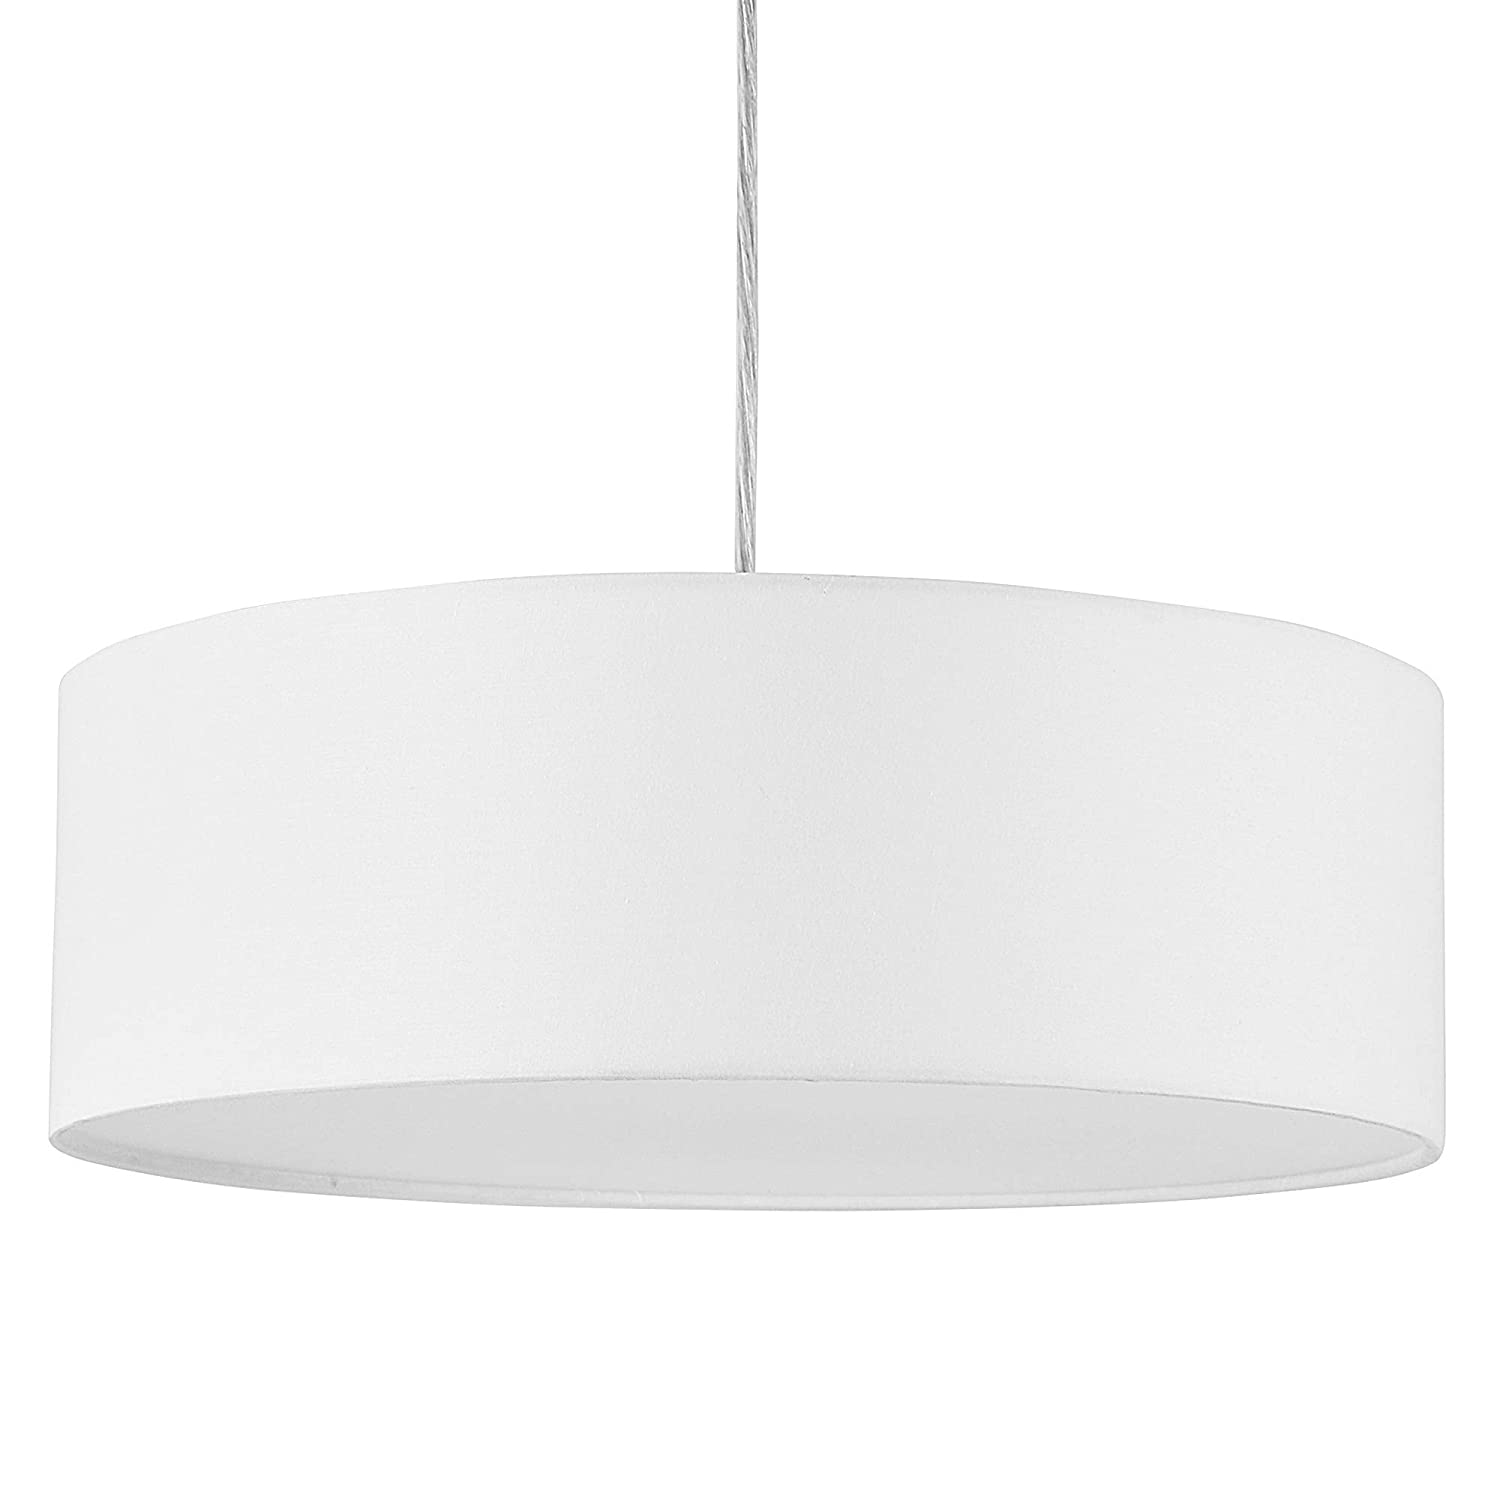 """Modern Pendant Light, 15.8"""" Classic 3-Light Drum Ceiling Chandelier, White Drum Shade, Round Frosted Acrylic Diffuser, Lamps for Living Room"""